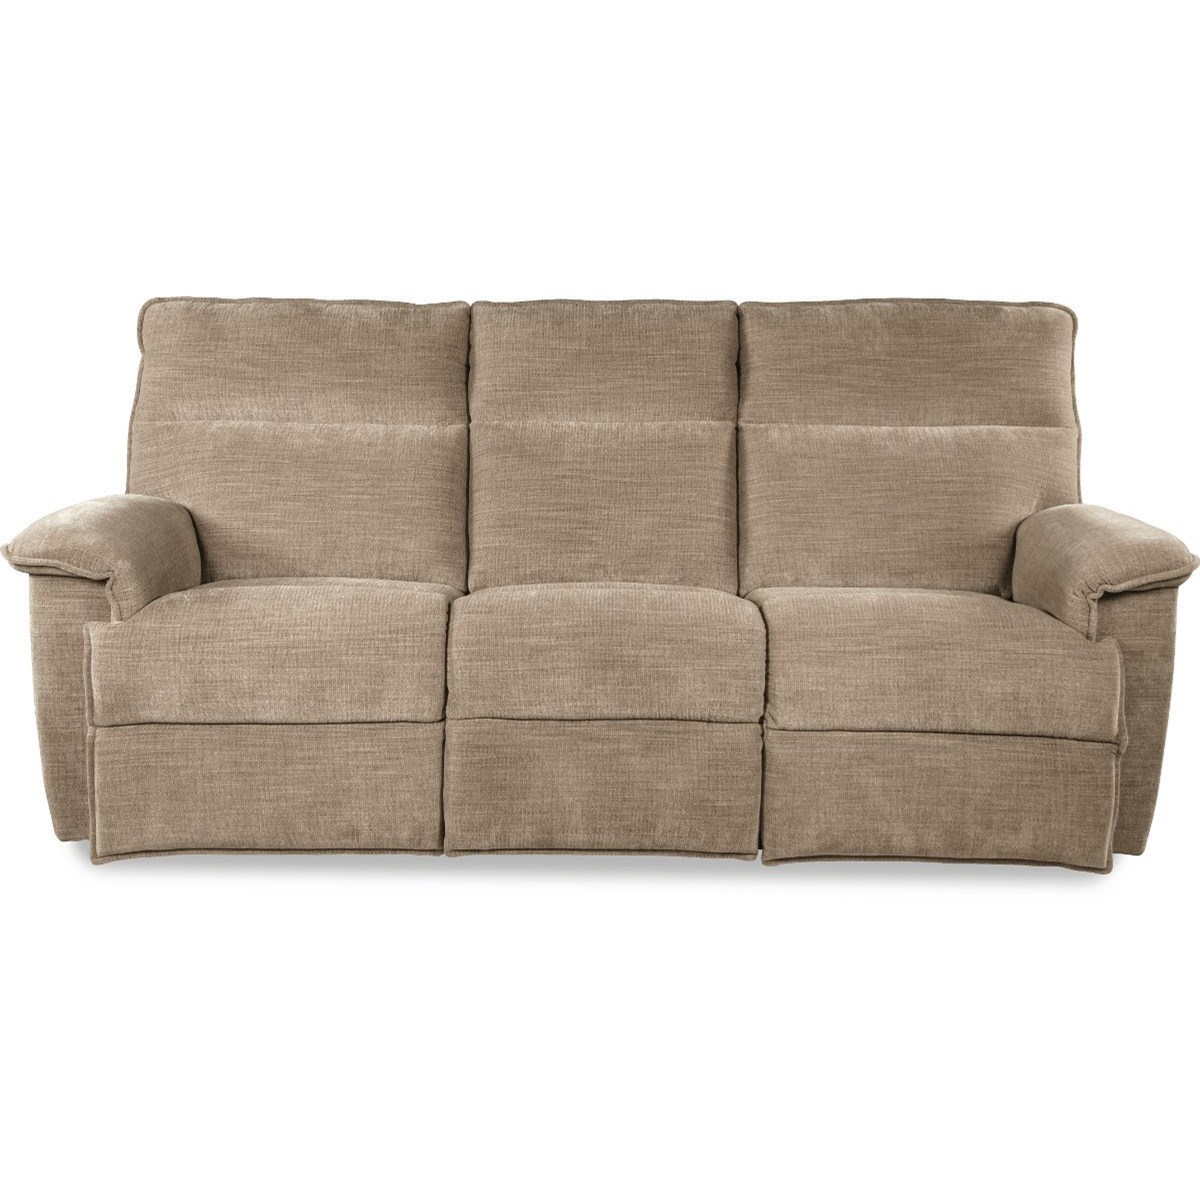 Exceptionnel Jason Casual Power Reclining Sofa With Power Tilt Headrests And USB  Charging Ports By La Z Boy At Rotmans